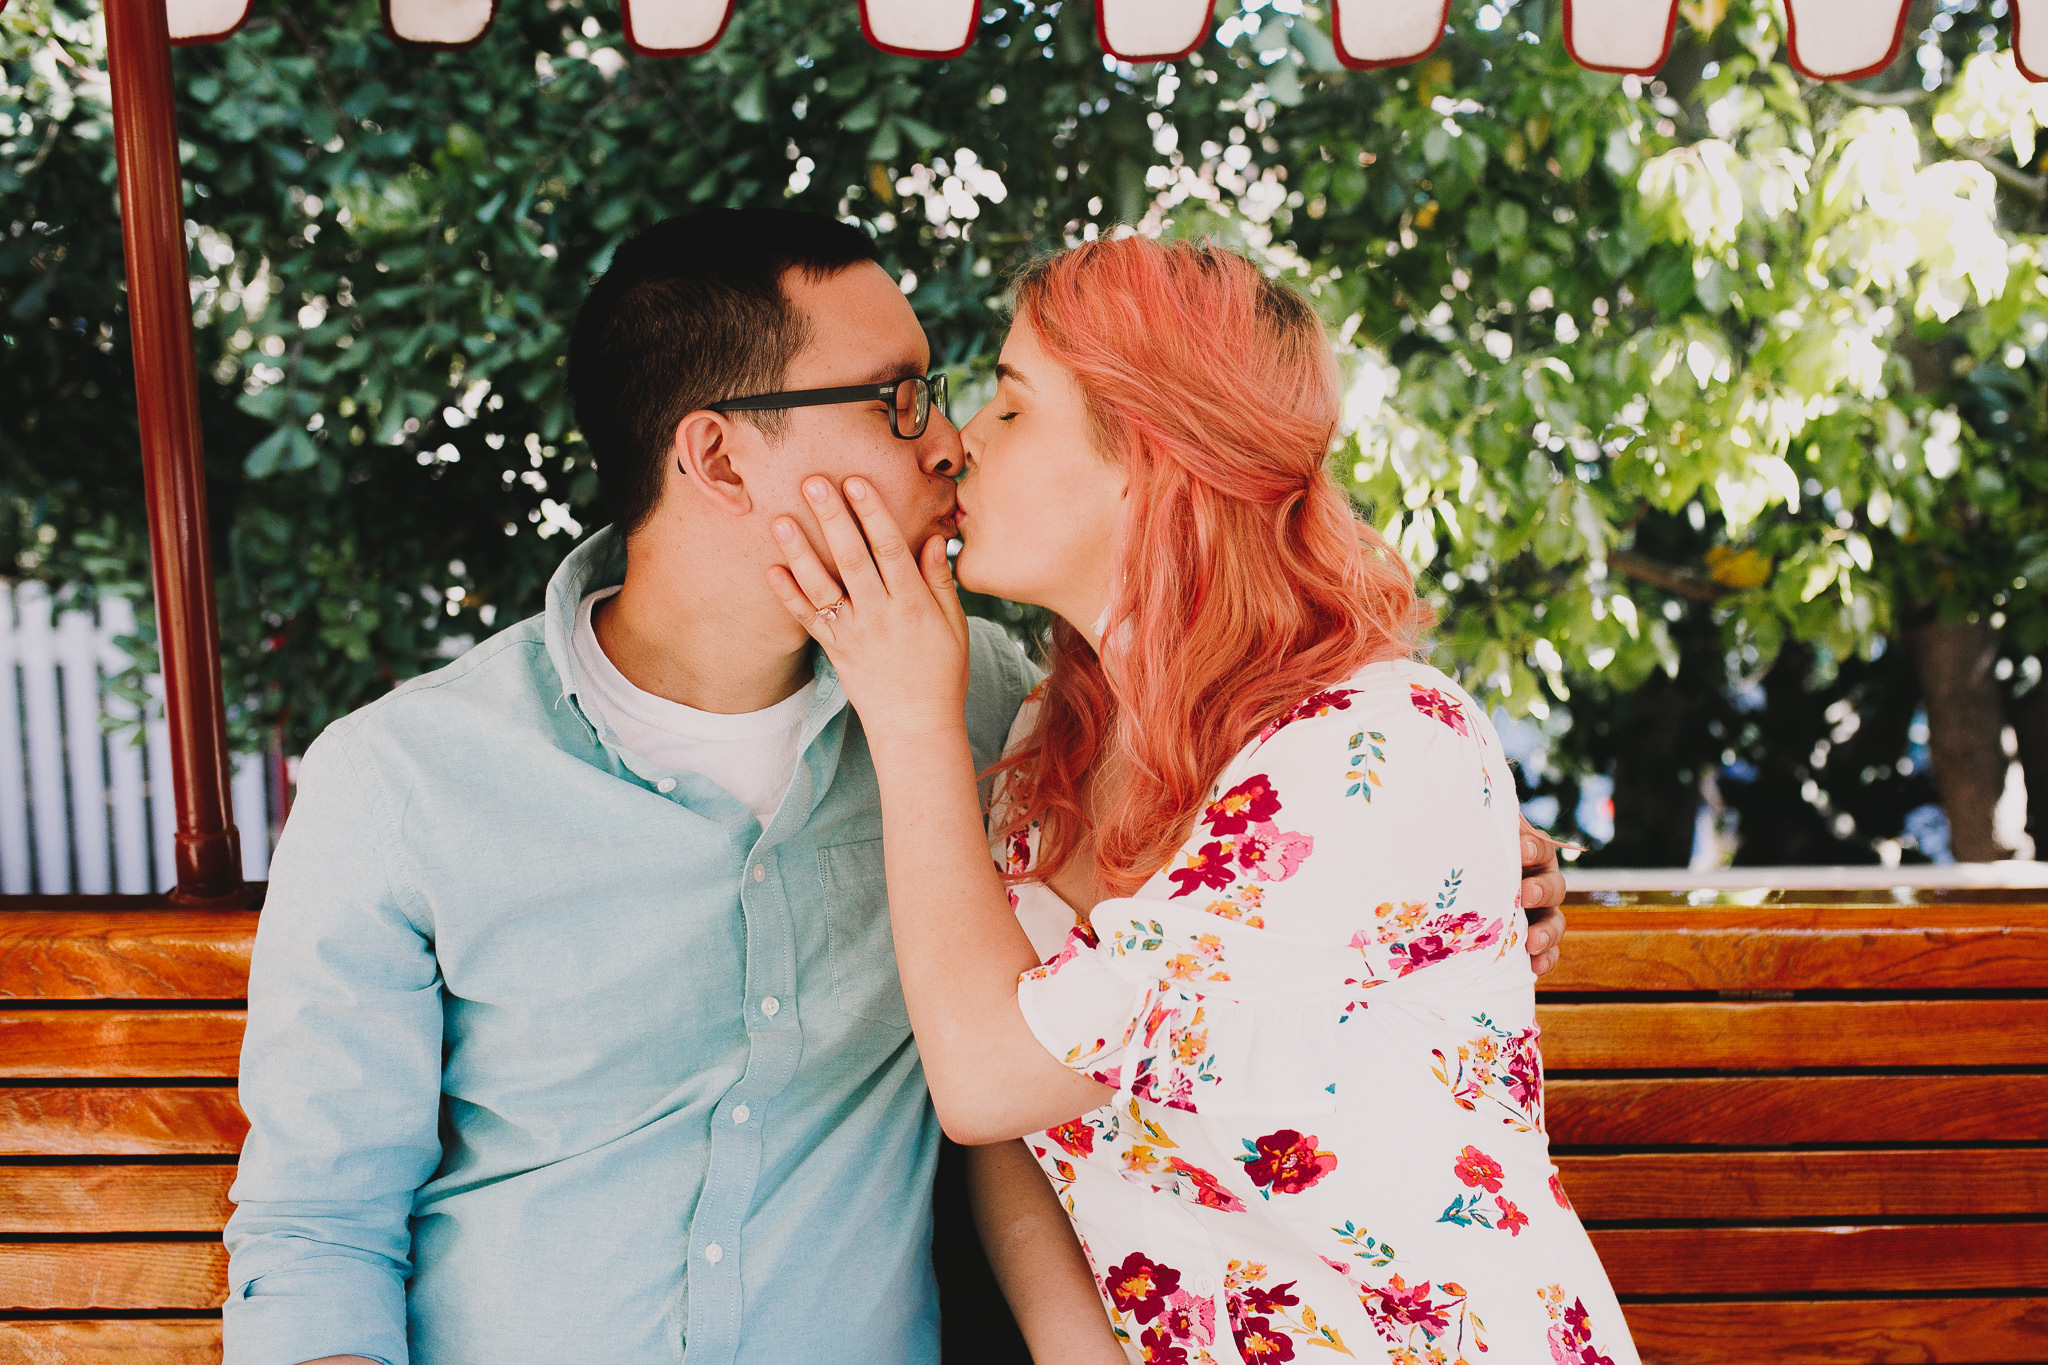 Archer Inspired Photography Disneyland Engagement Wedding Session Southern California Kayla and Kevin Lifestyle Documentary-93.jpg